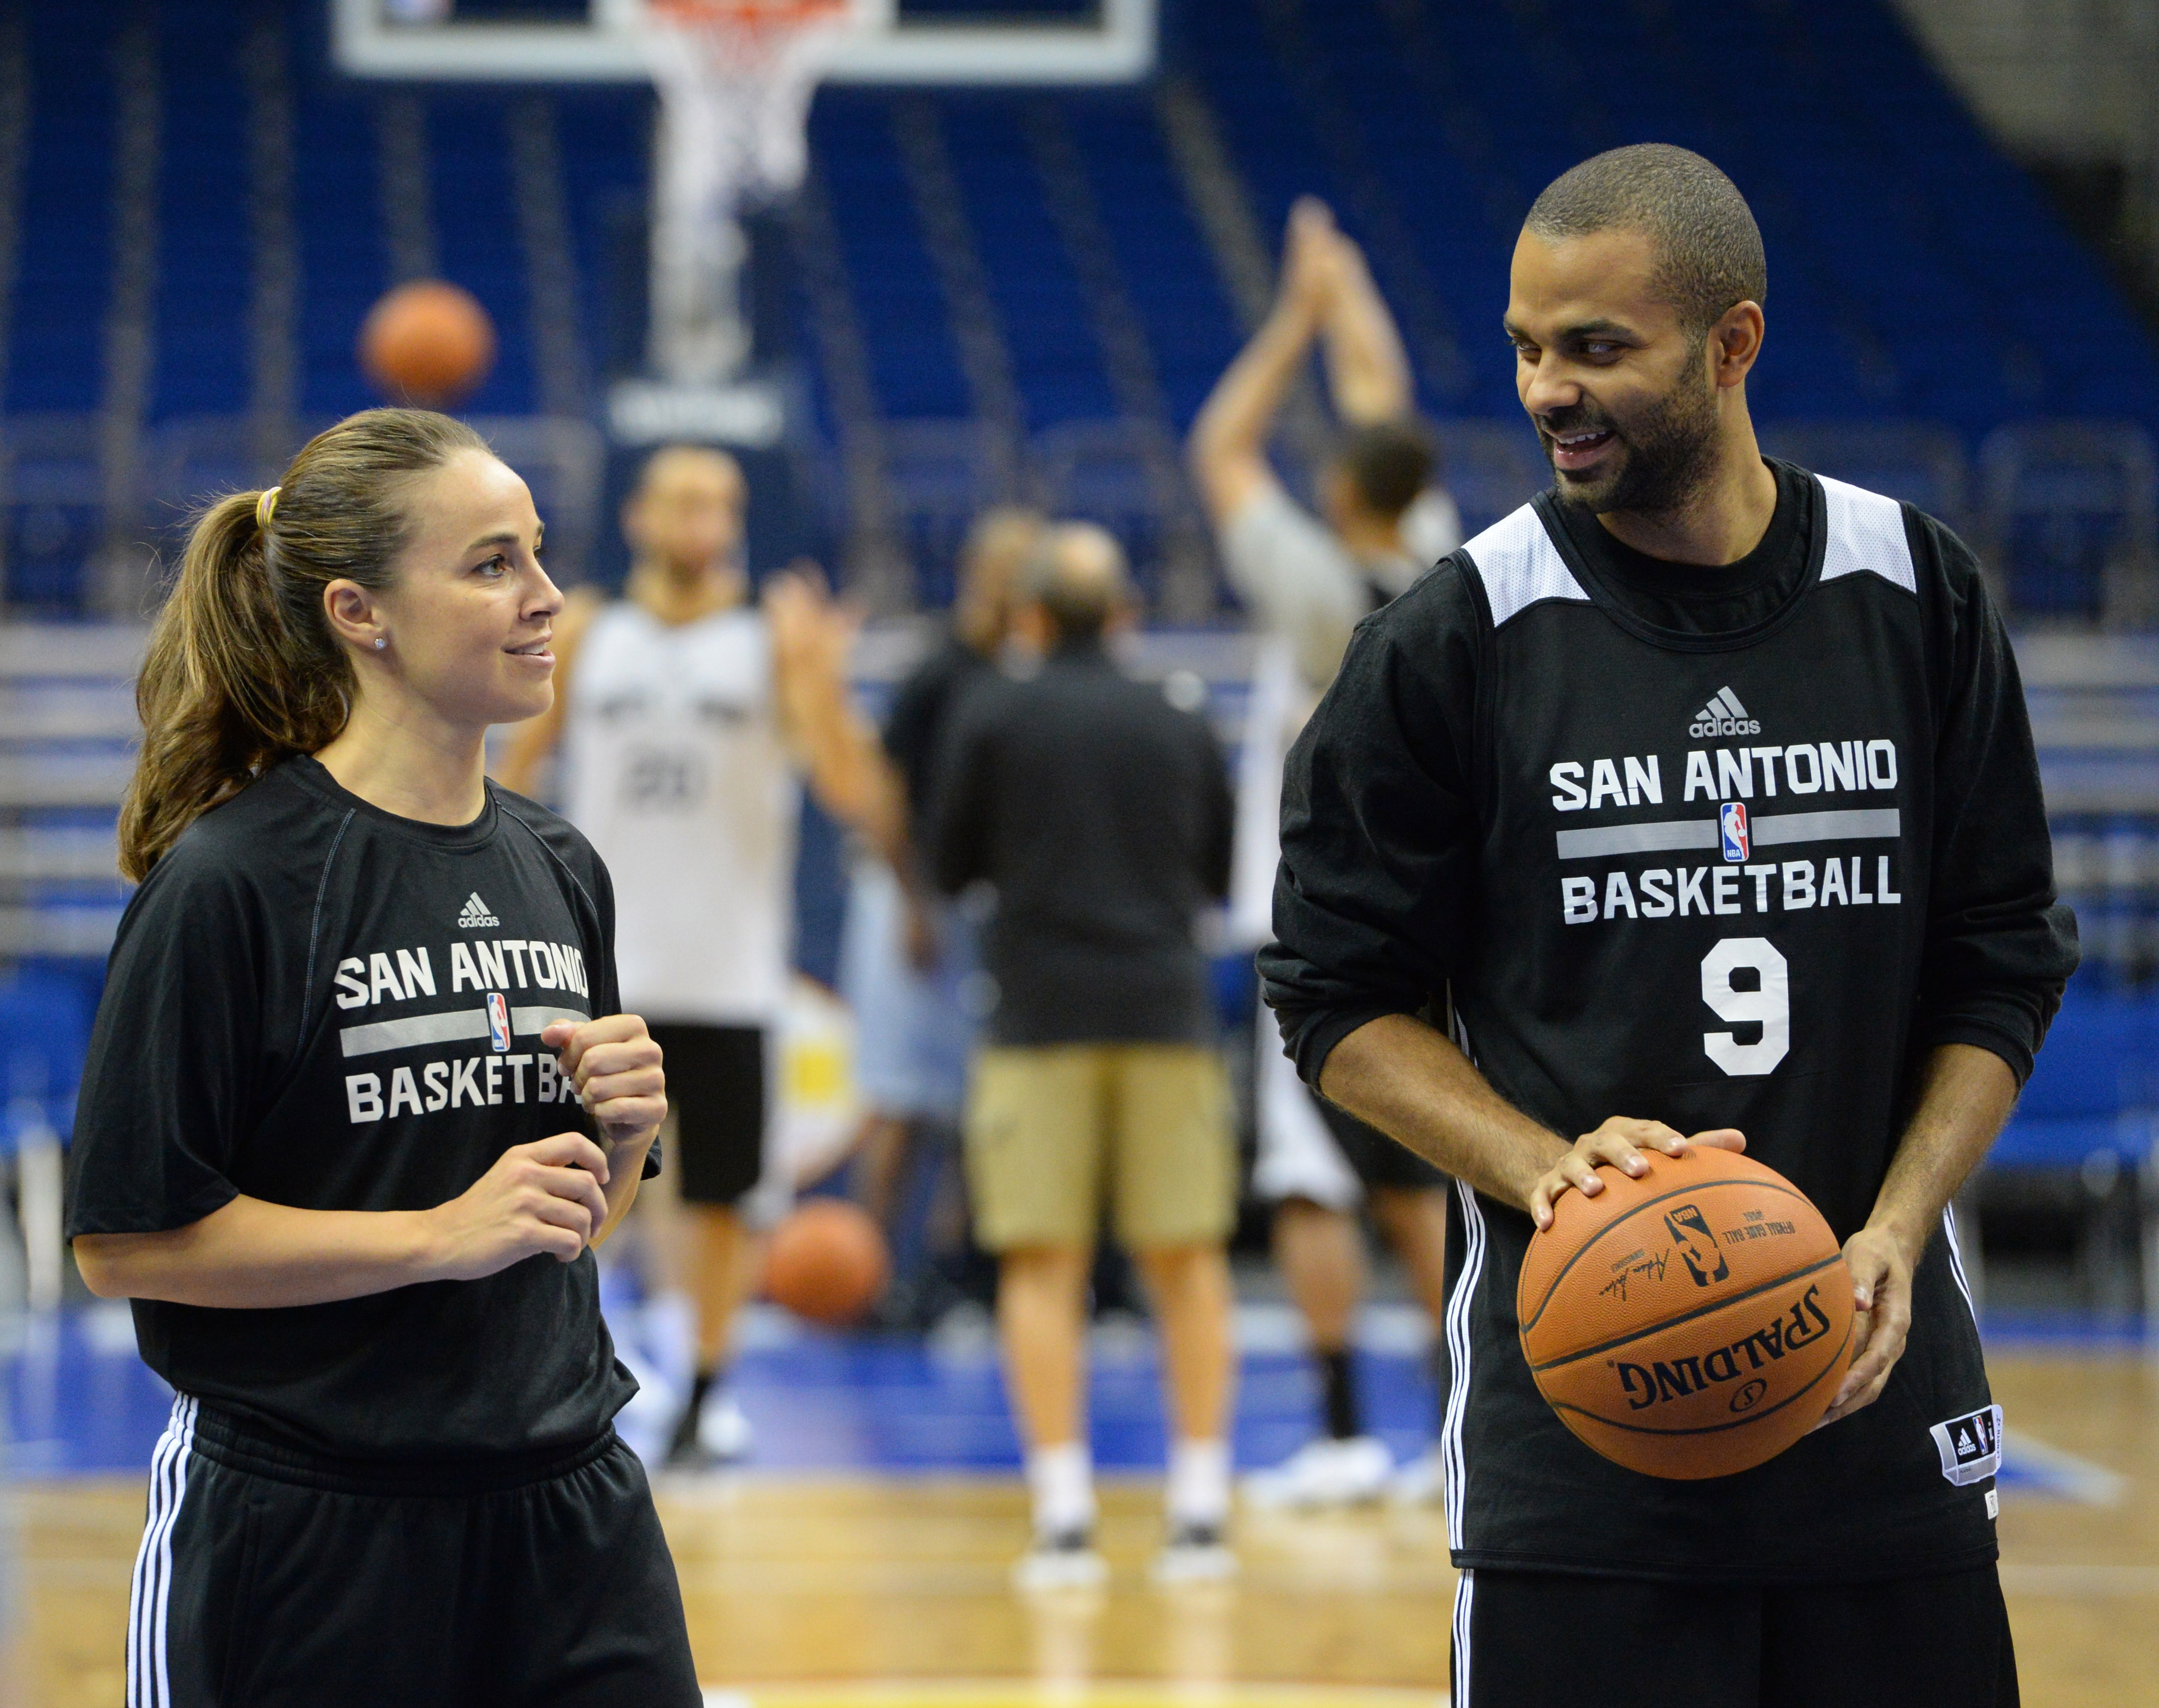 WNBA All-star Becky Hammon's Journey as First Full Time ...